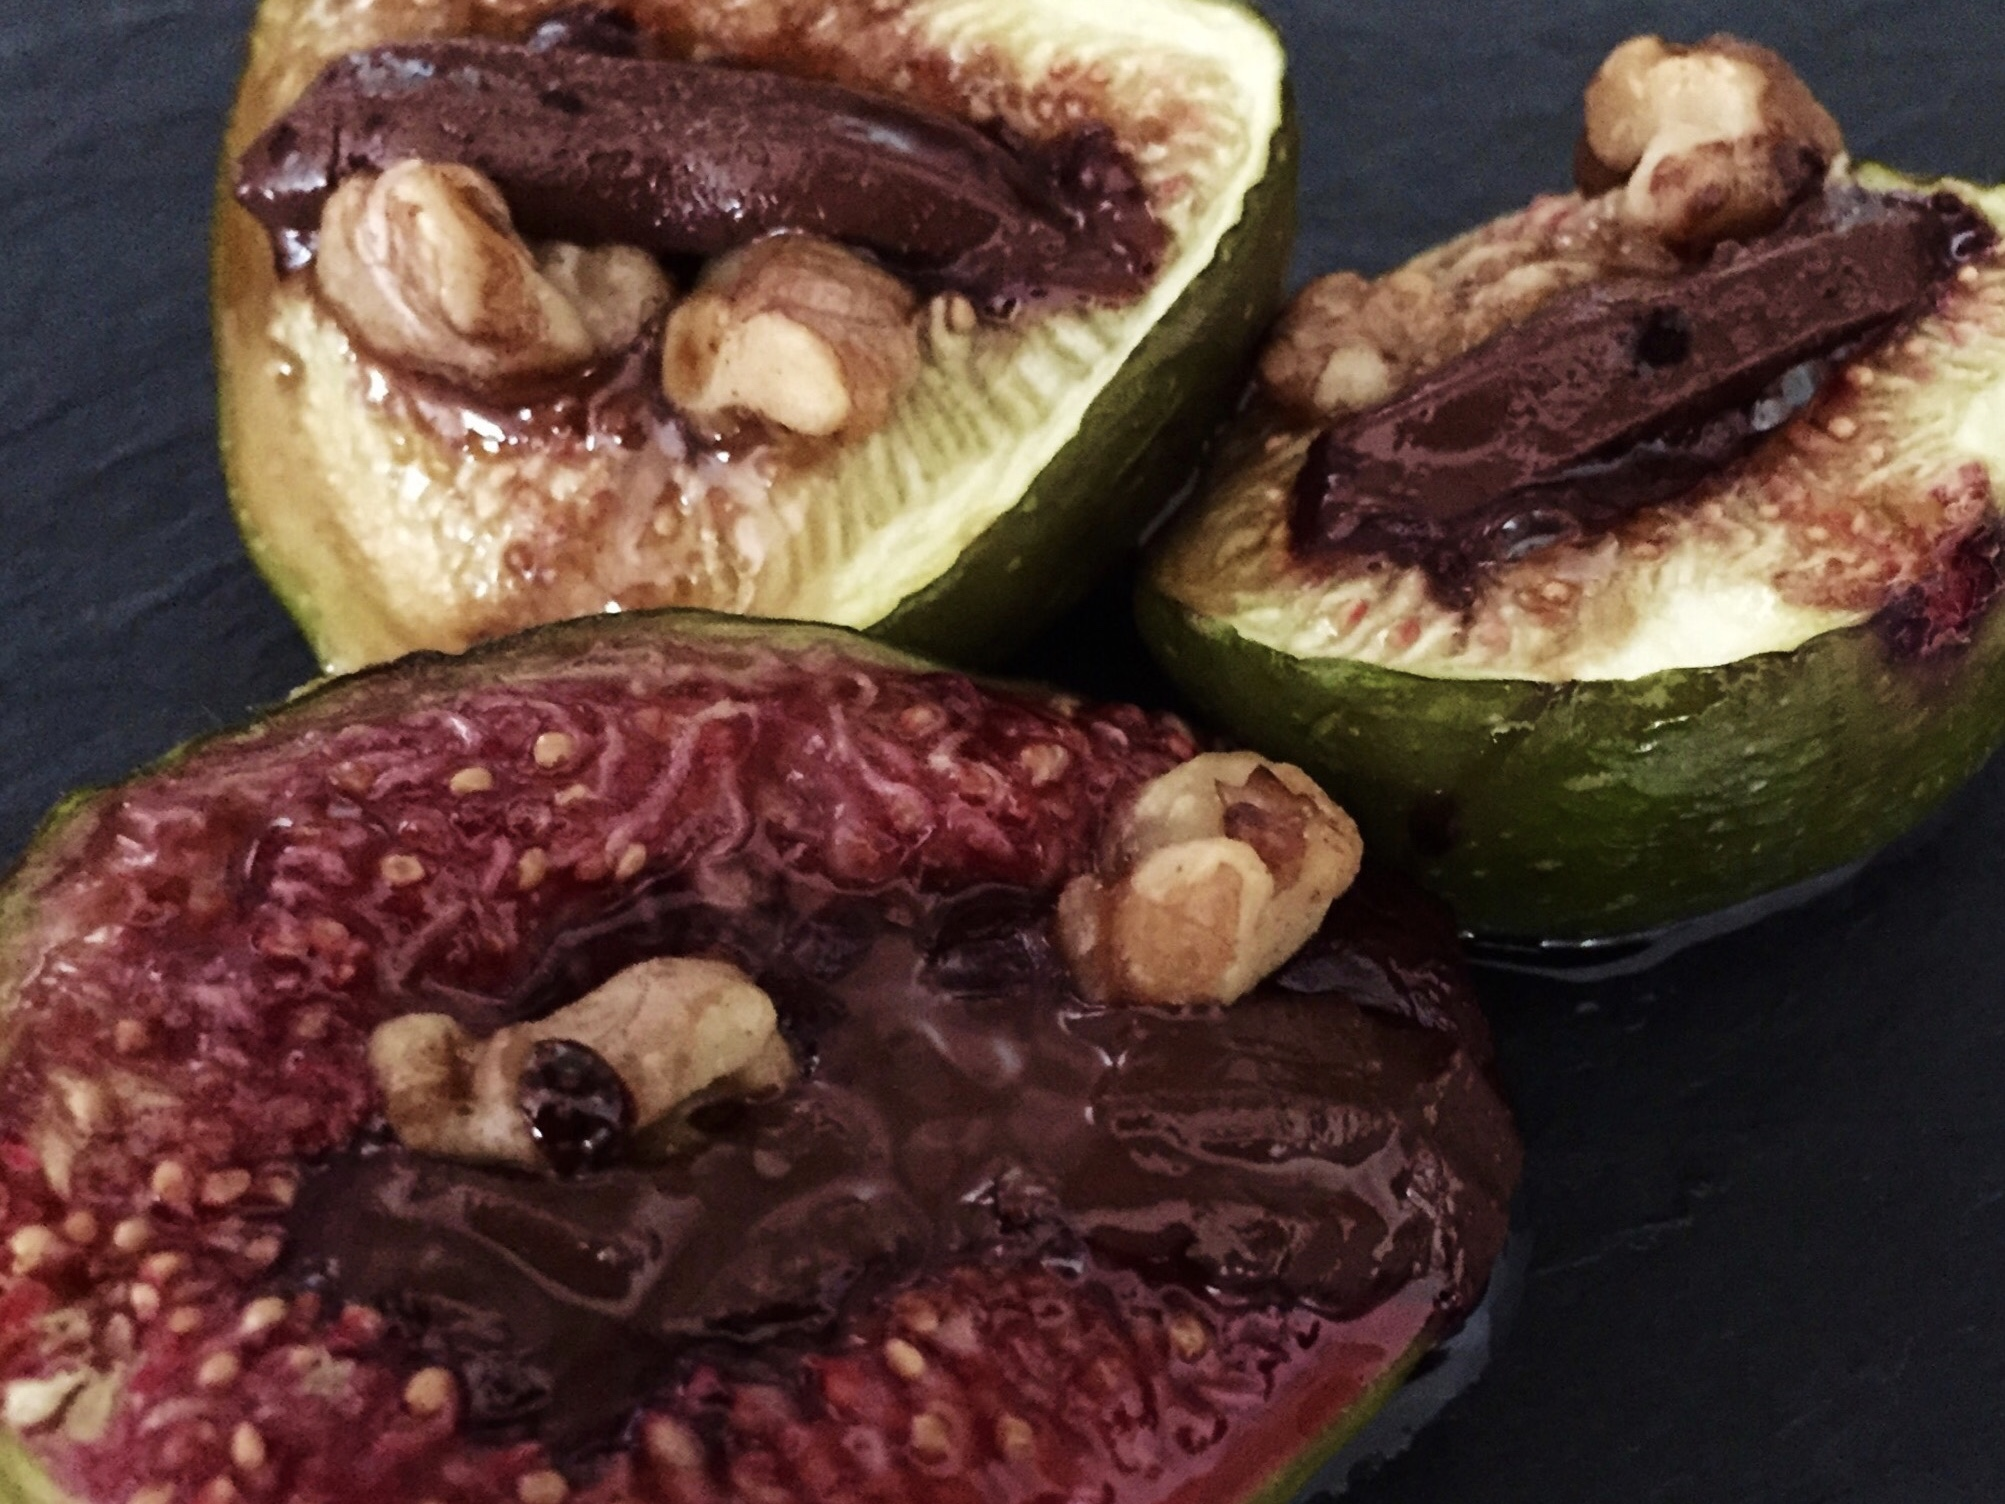 baked chocolate figs